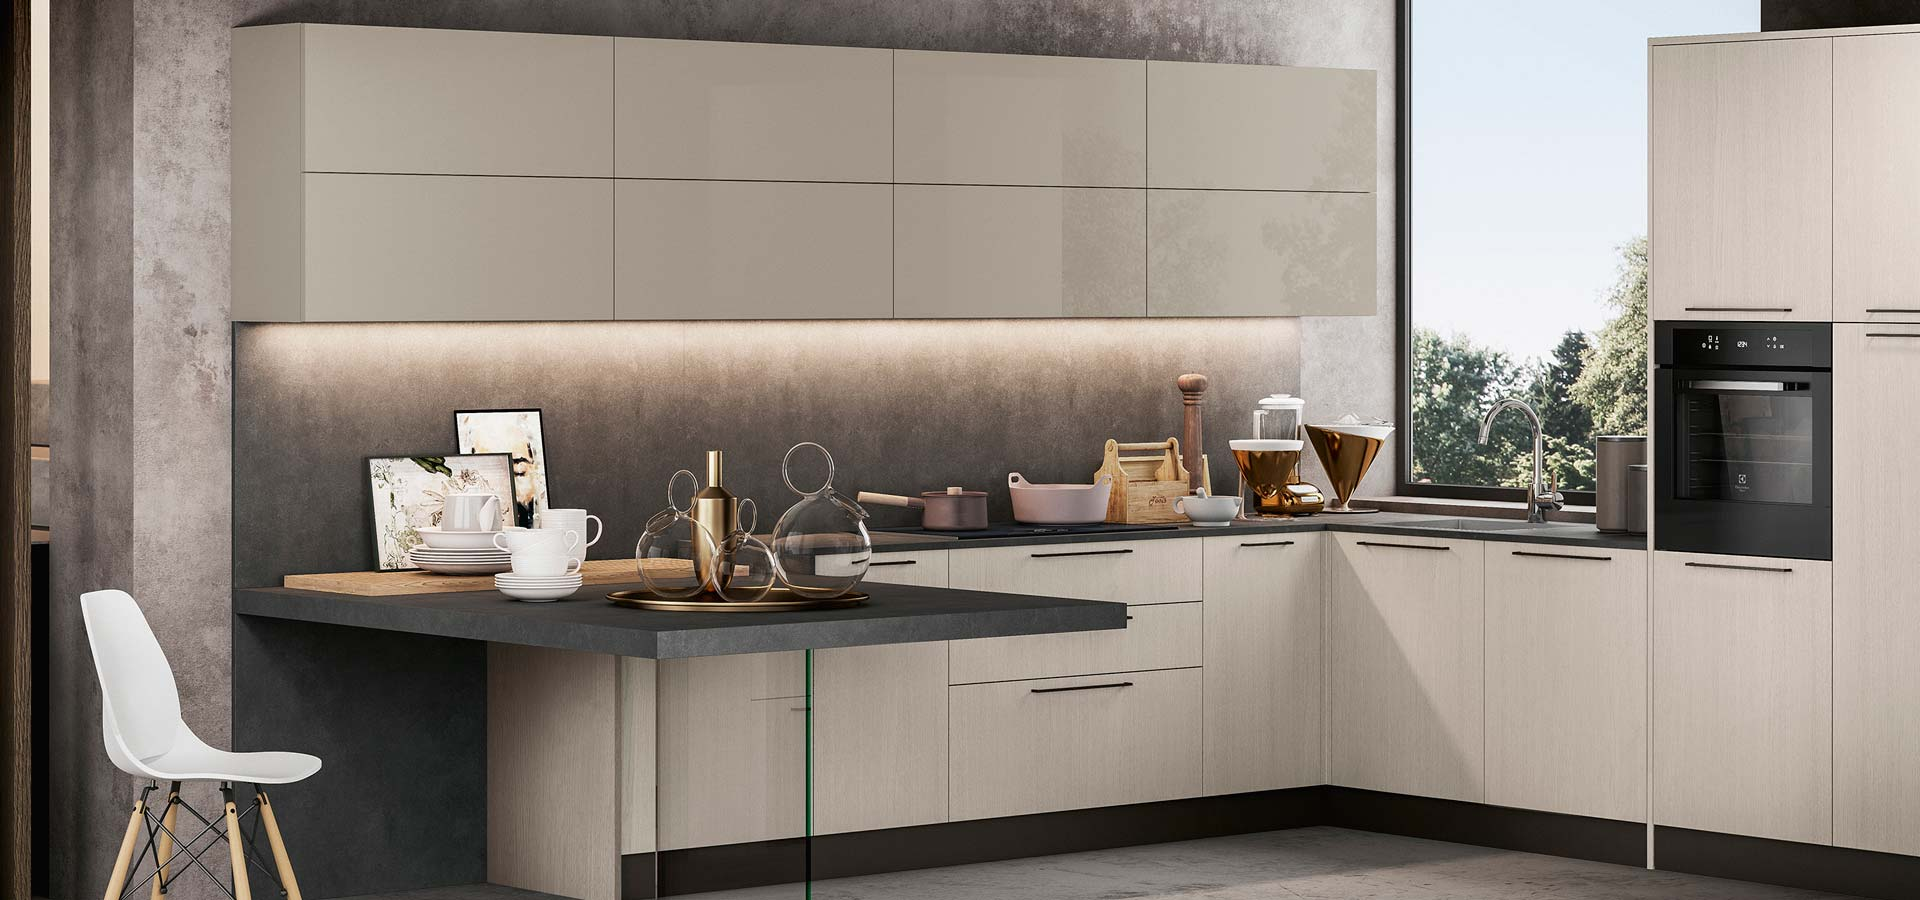 Beautiful Cucine Arredo 3 Opinioni Ideas - acrylicgiftware.us ...